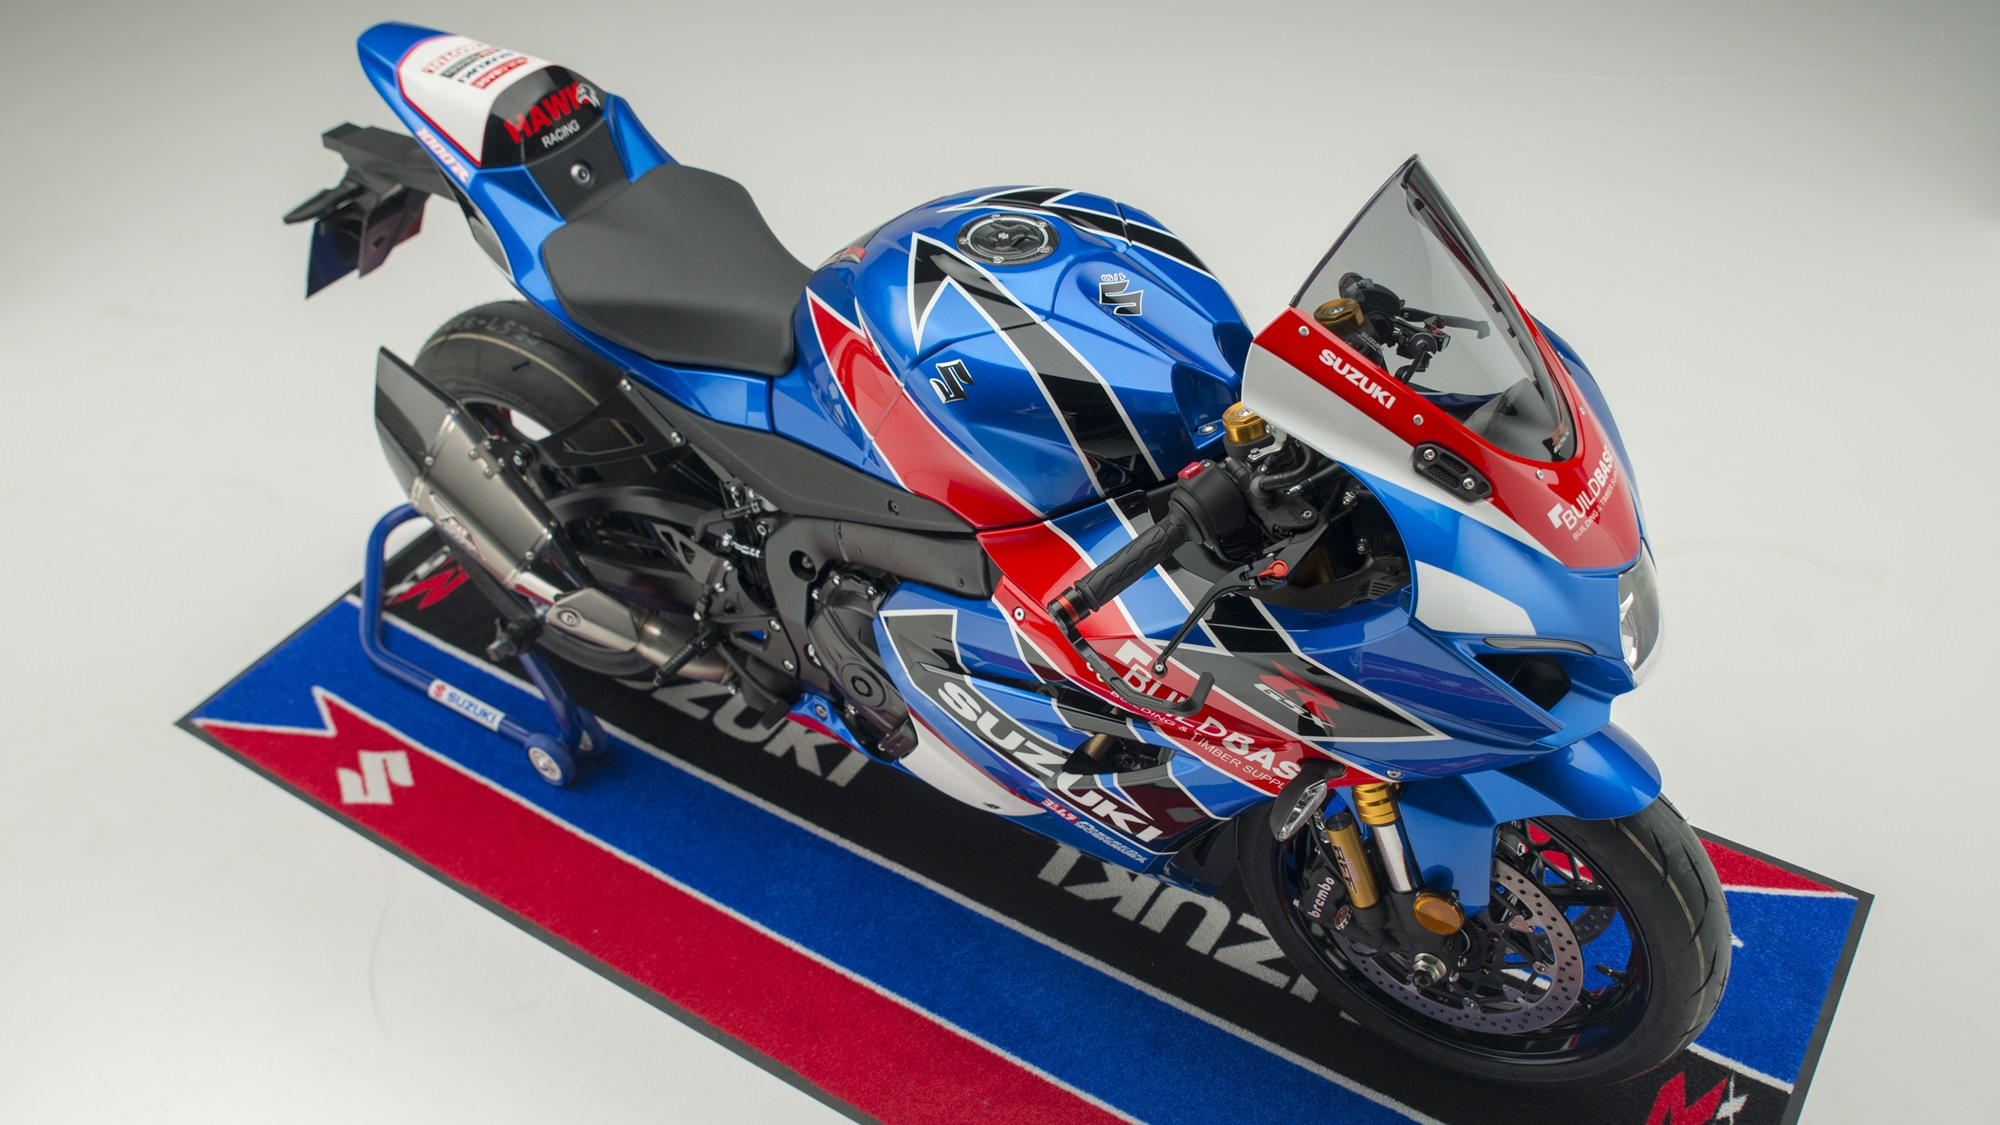 Limited edition Buildbase Suzuki replica GSX-R1000R